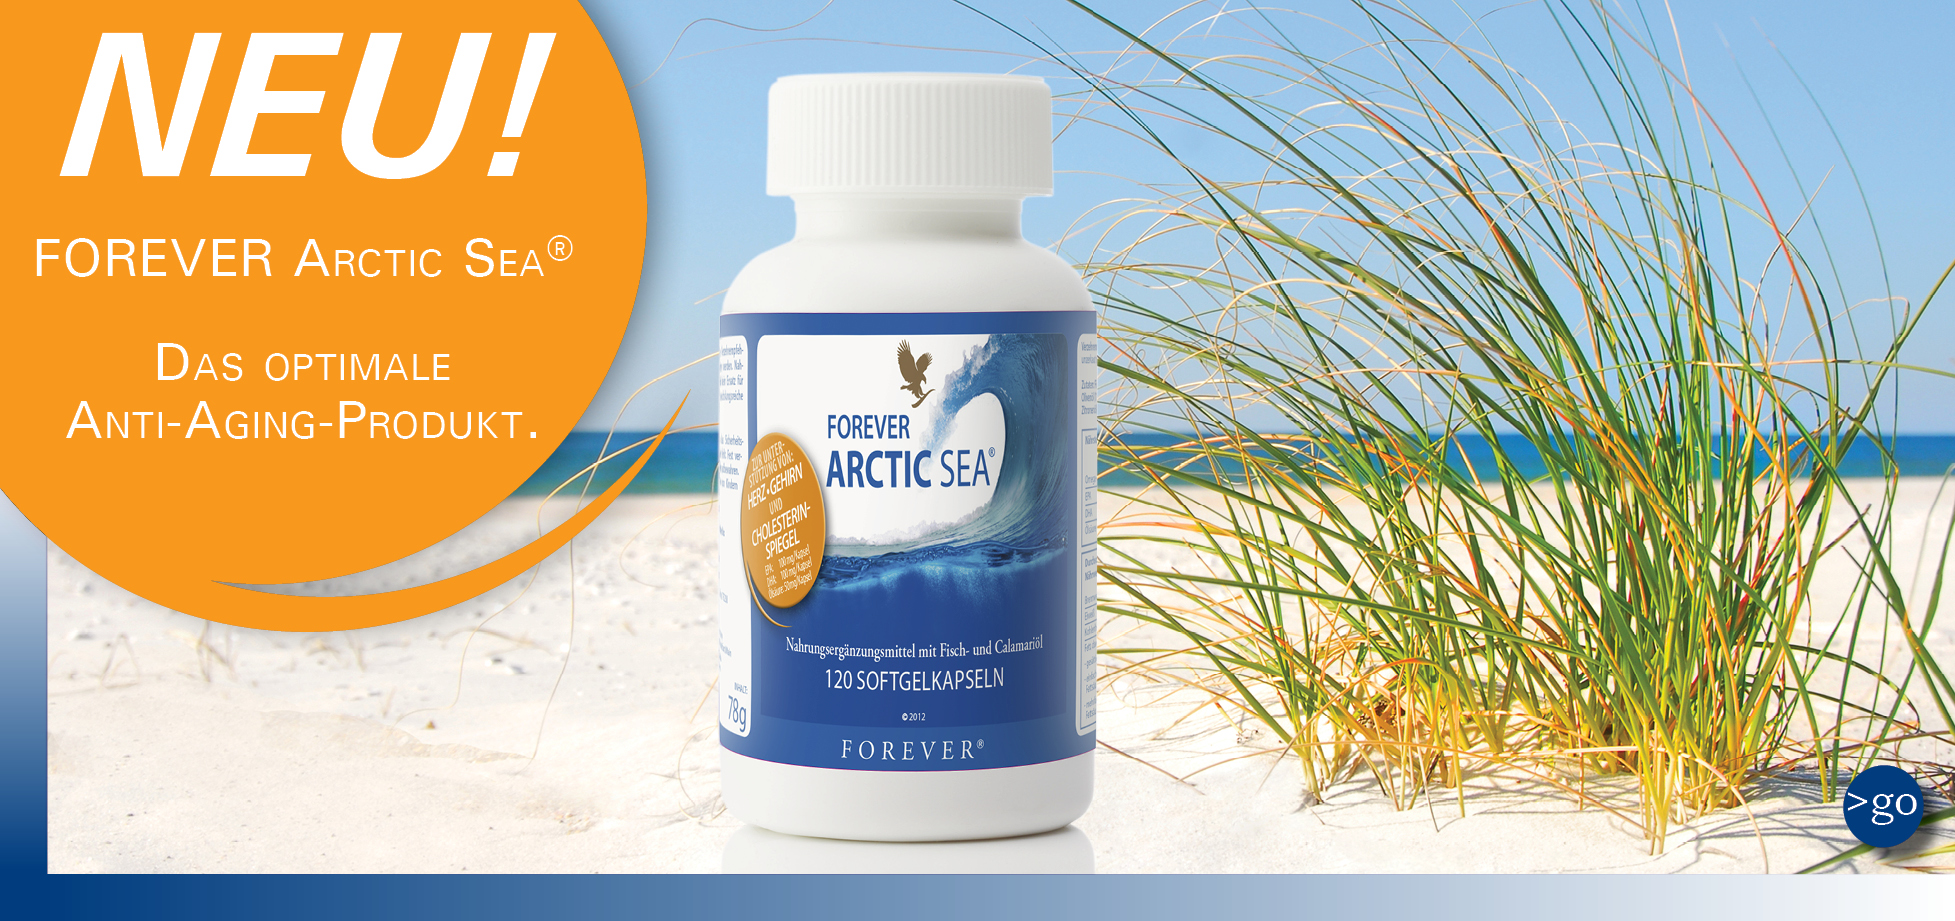 https://www.flpg.de/fileadmin/user_upload/Download/Produkte/FOREVER%20Arctic%20Sea/FOREVER%20Living%20Products%20Forever%20Arctic%20Sea.jpg